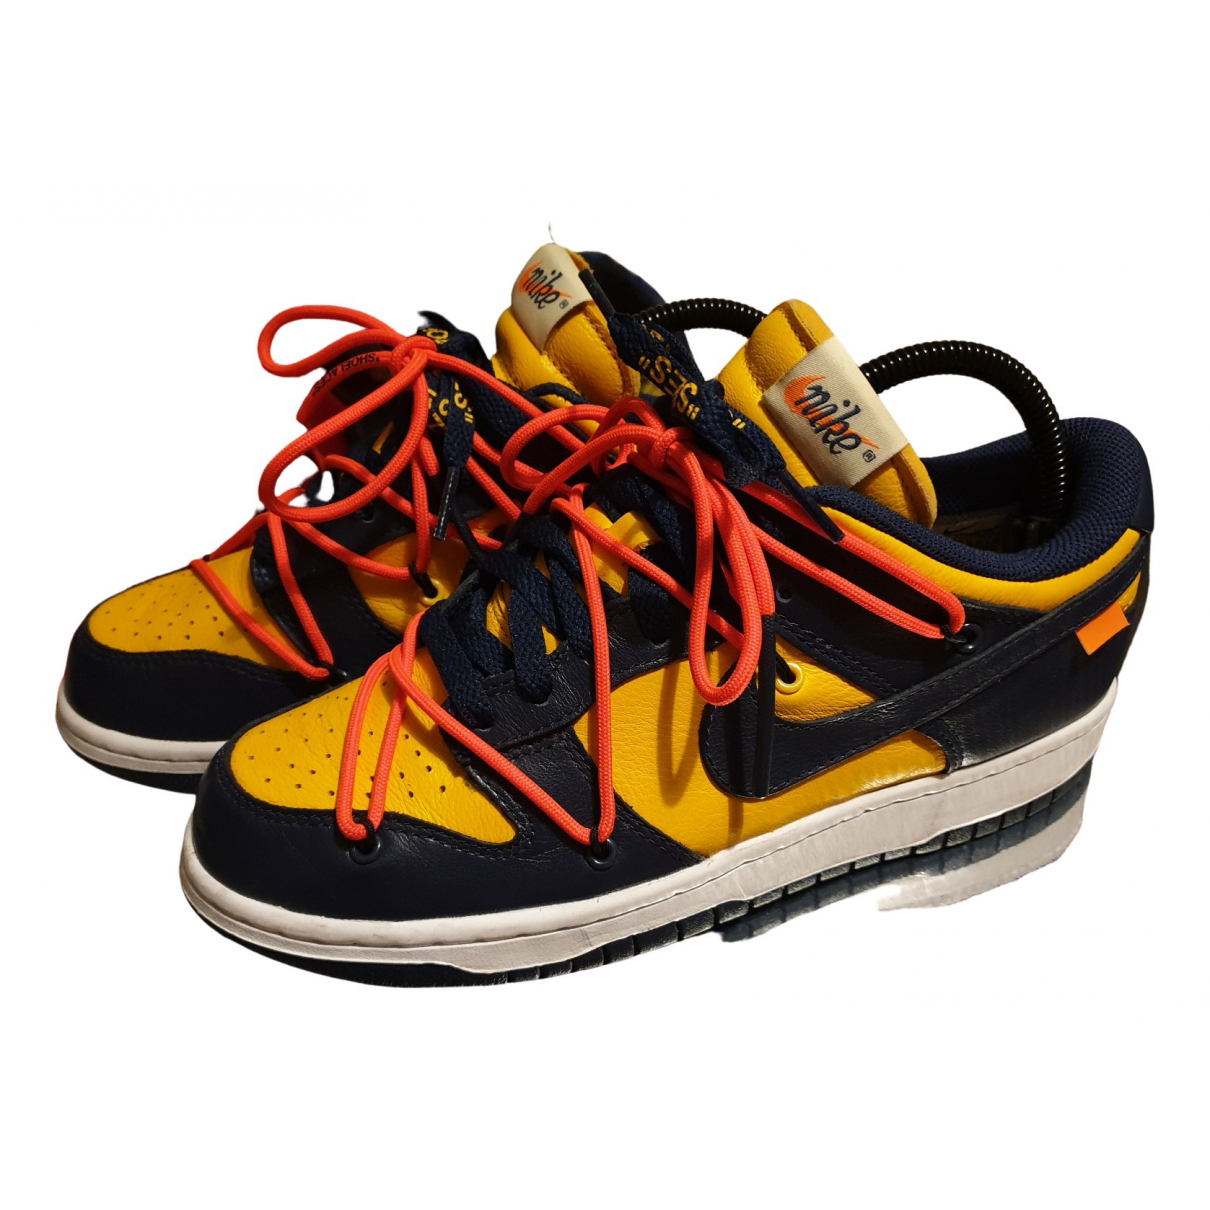 Nike X Off-white Dunk Low Multicolour Leather Trainers for Women 34 EU